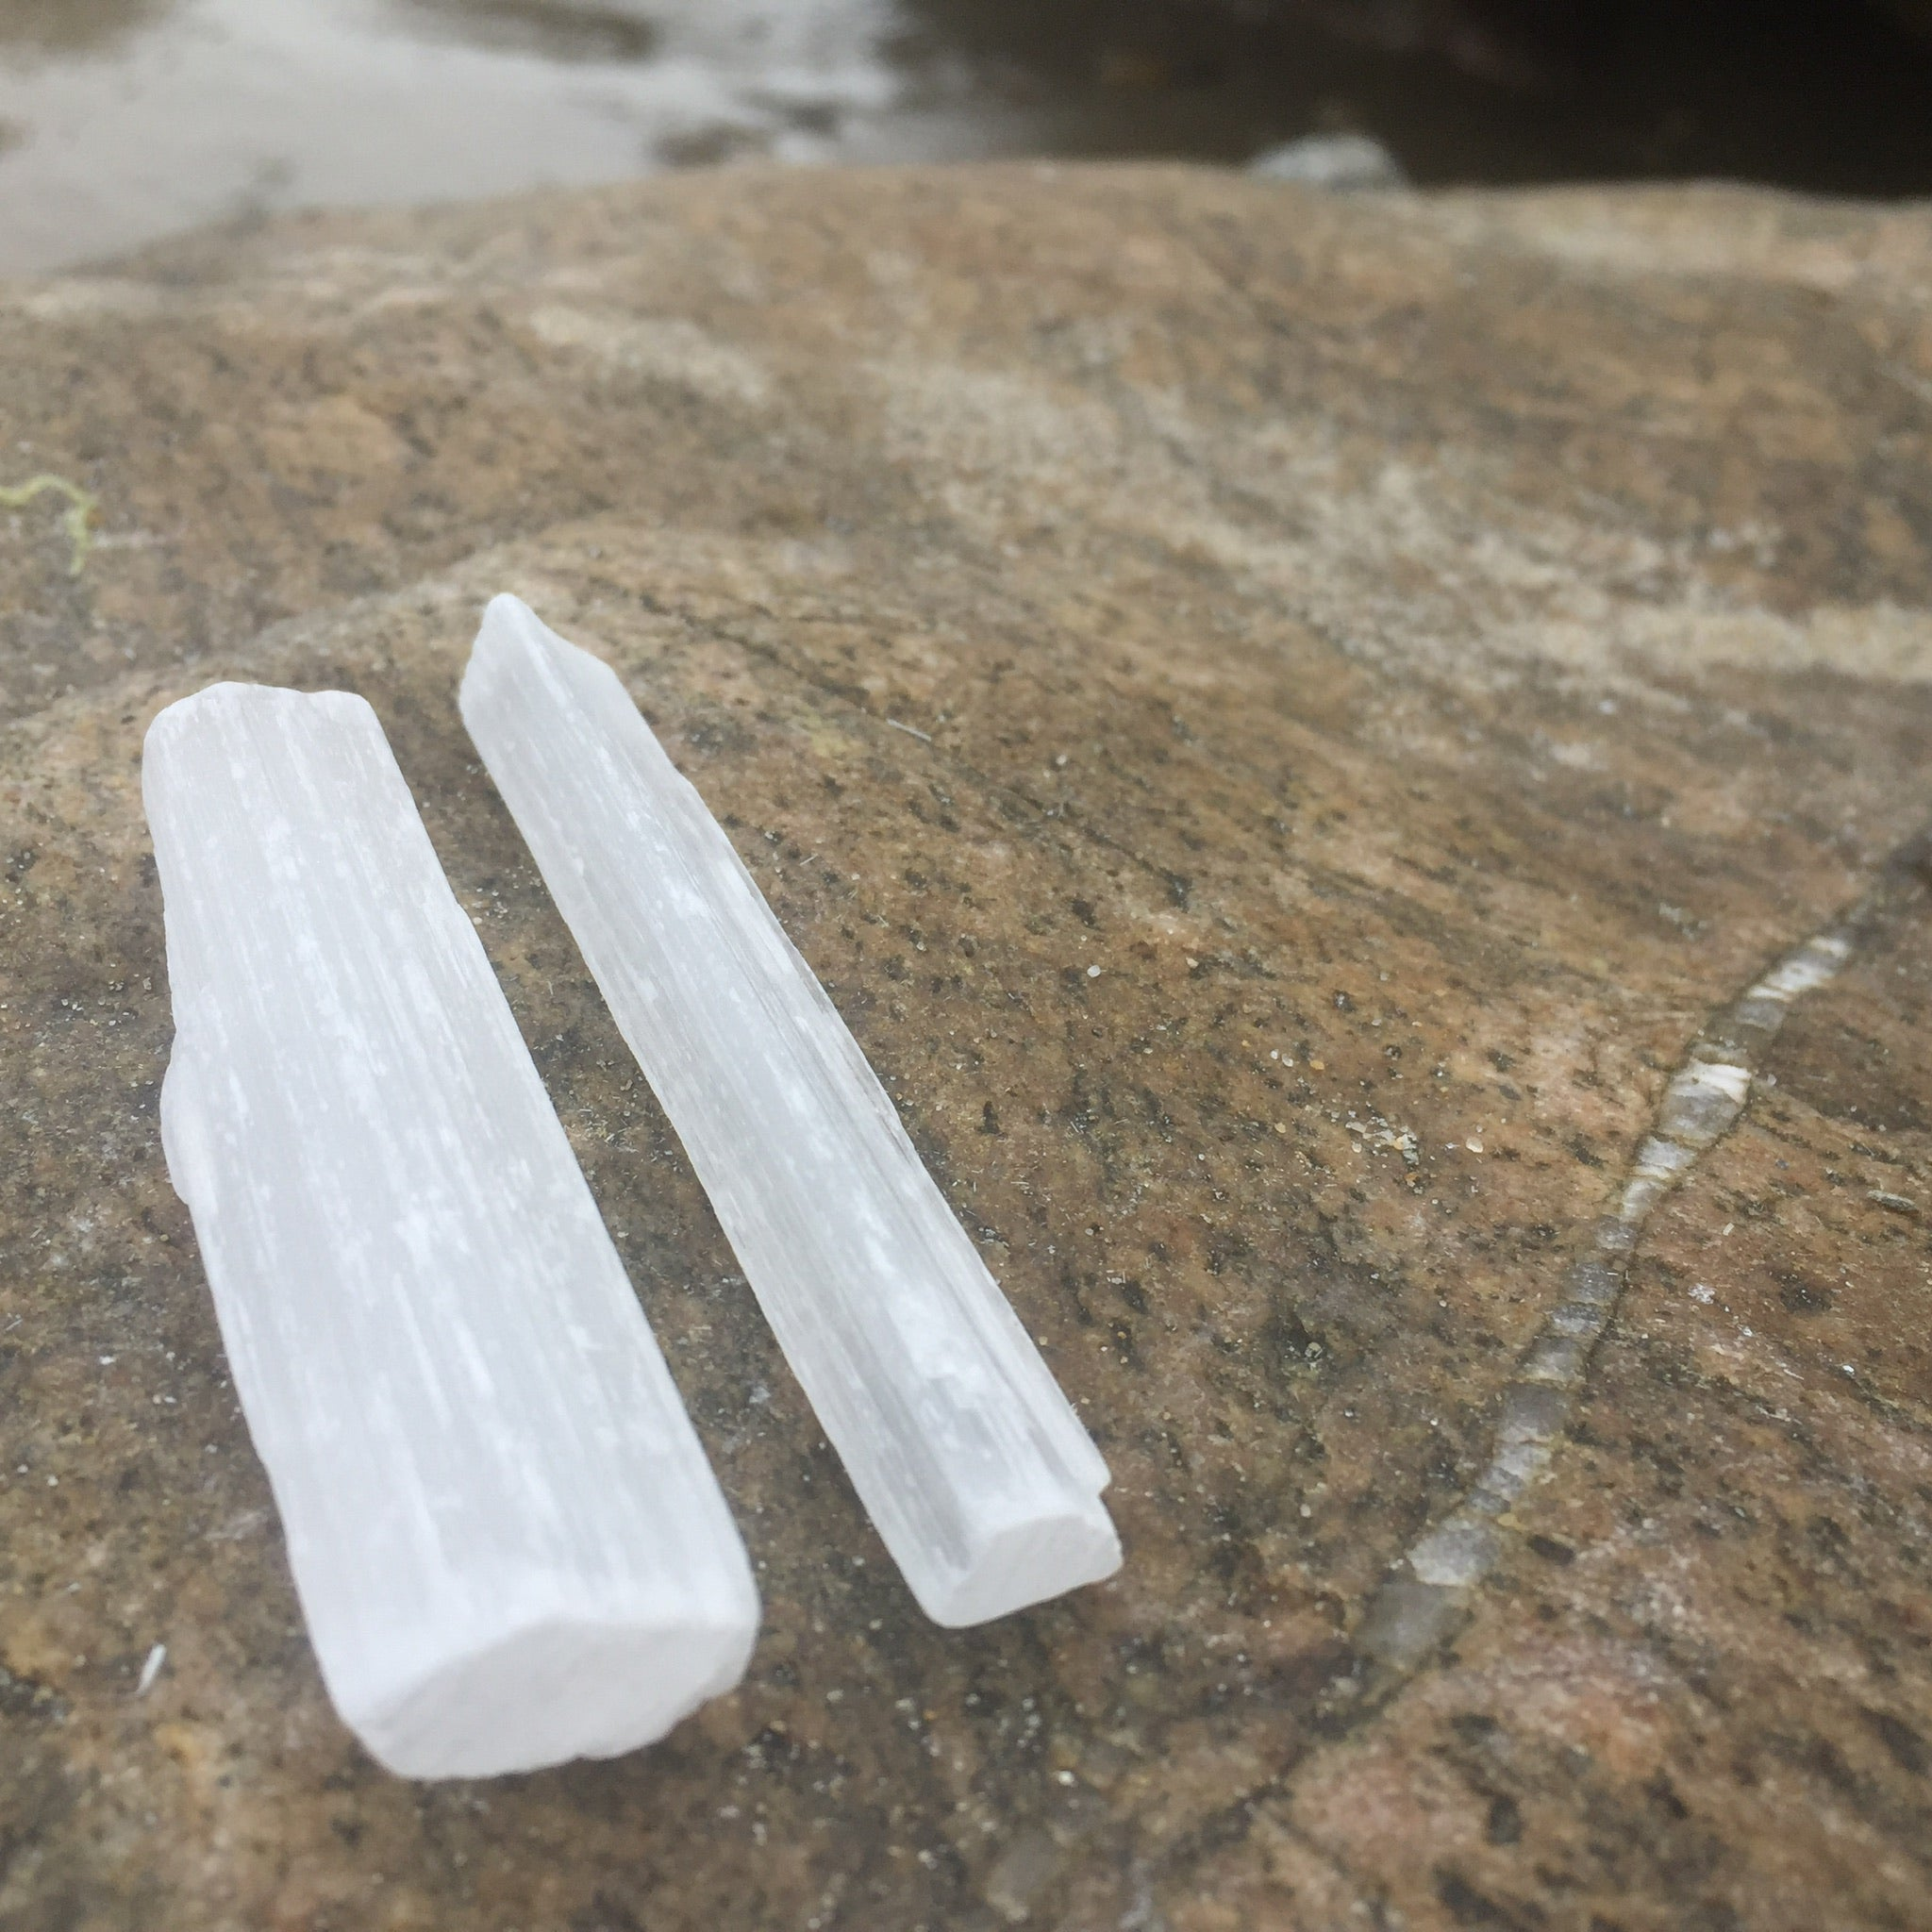 Selenite Crystal Wand Healing Set for Energy Healing Work & Spiritual Connection